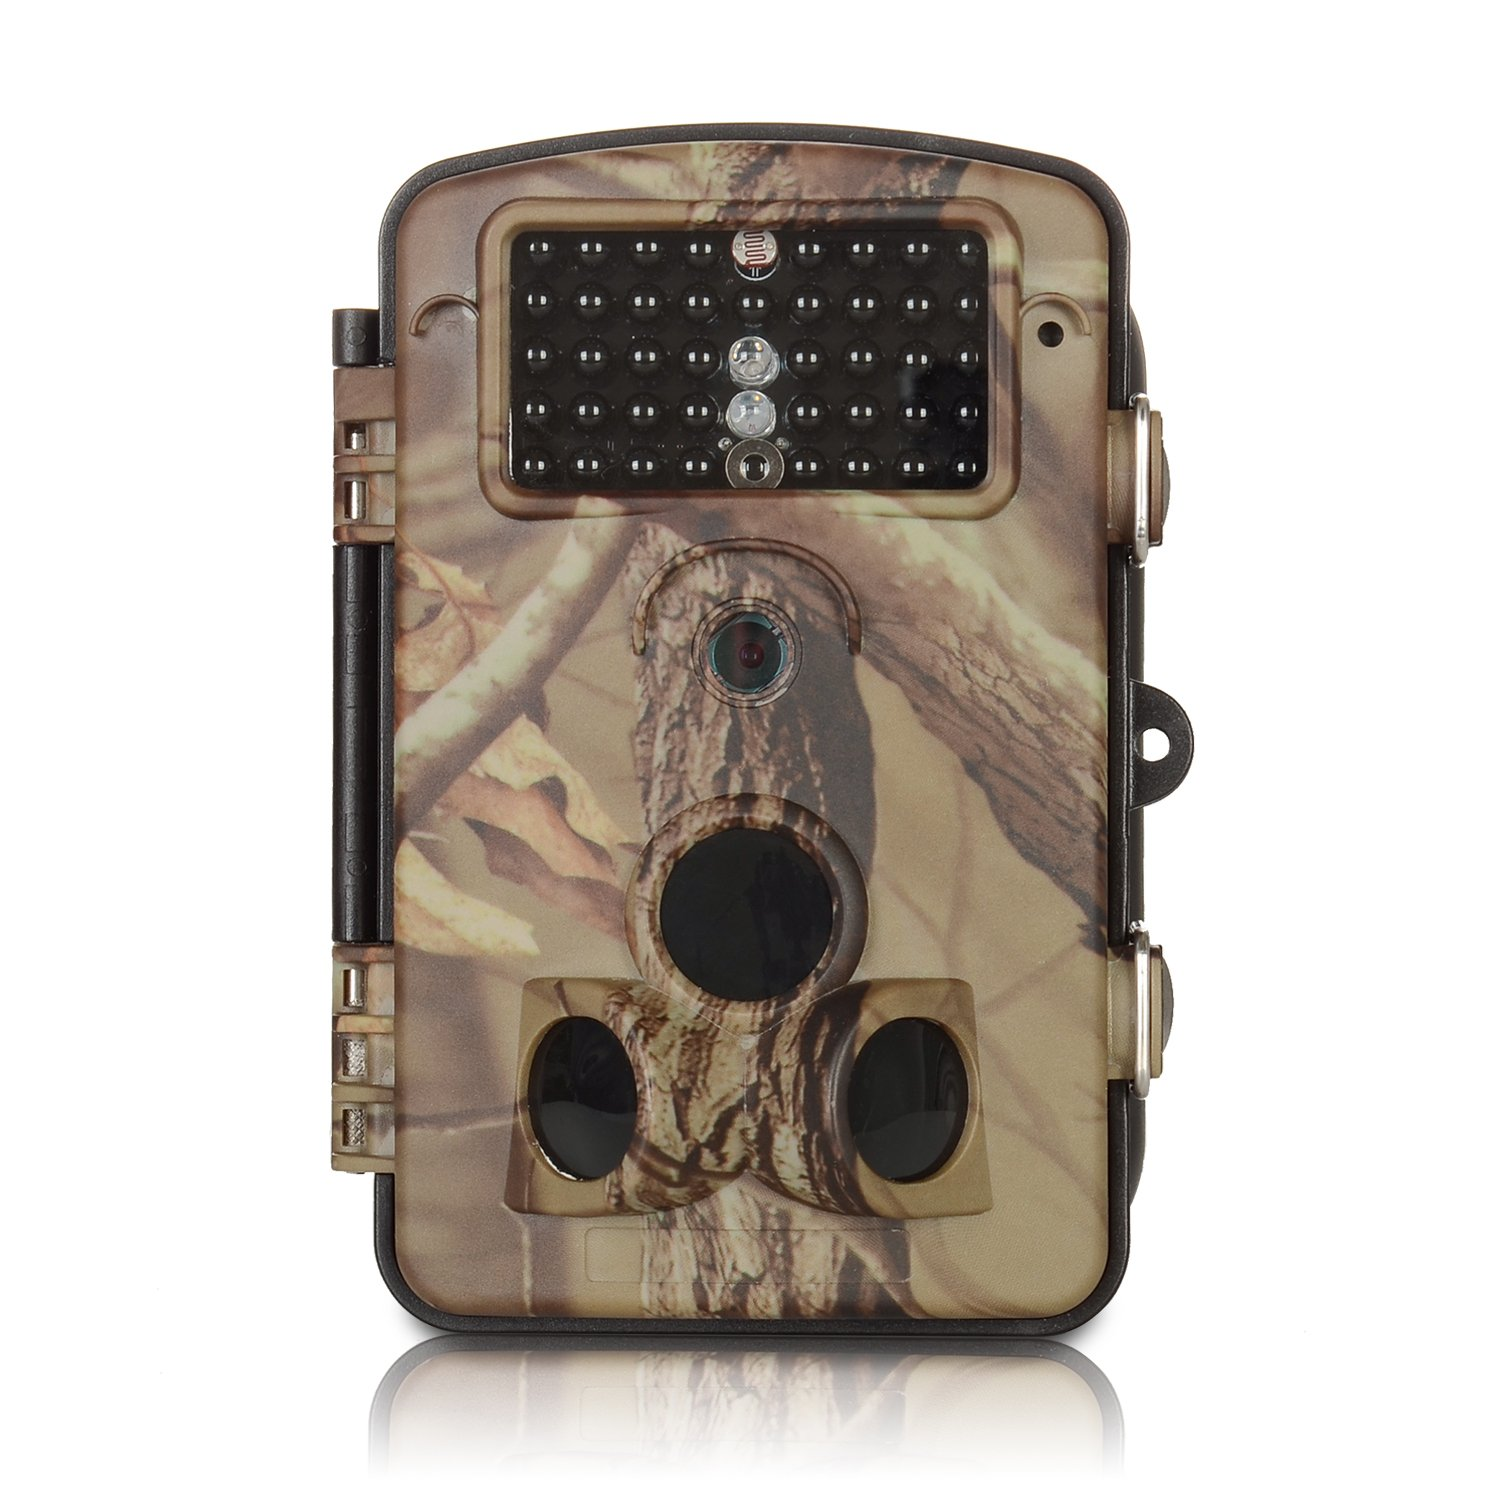 ANNKE C303 HD 720p Game and Trail Camera with IR Night Vision LEDs, Wide Angle Lens, 2.4-Inch LCD Display, and Weatherproof Housing by ANNKE